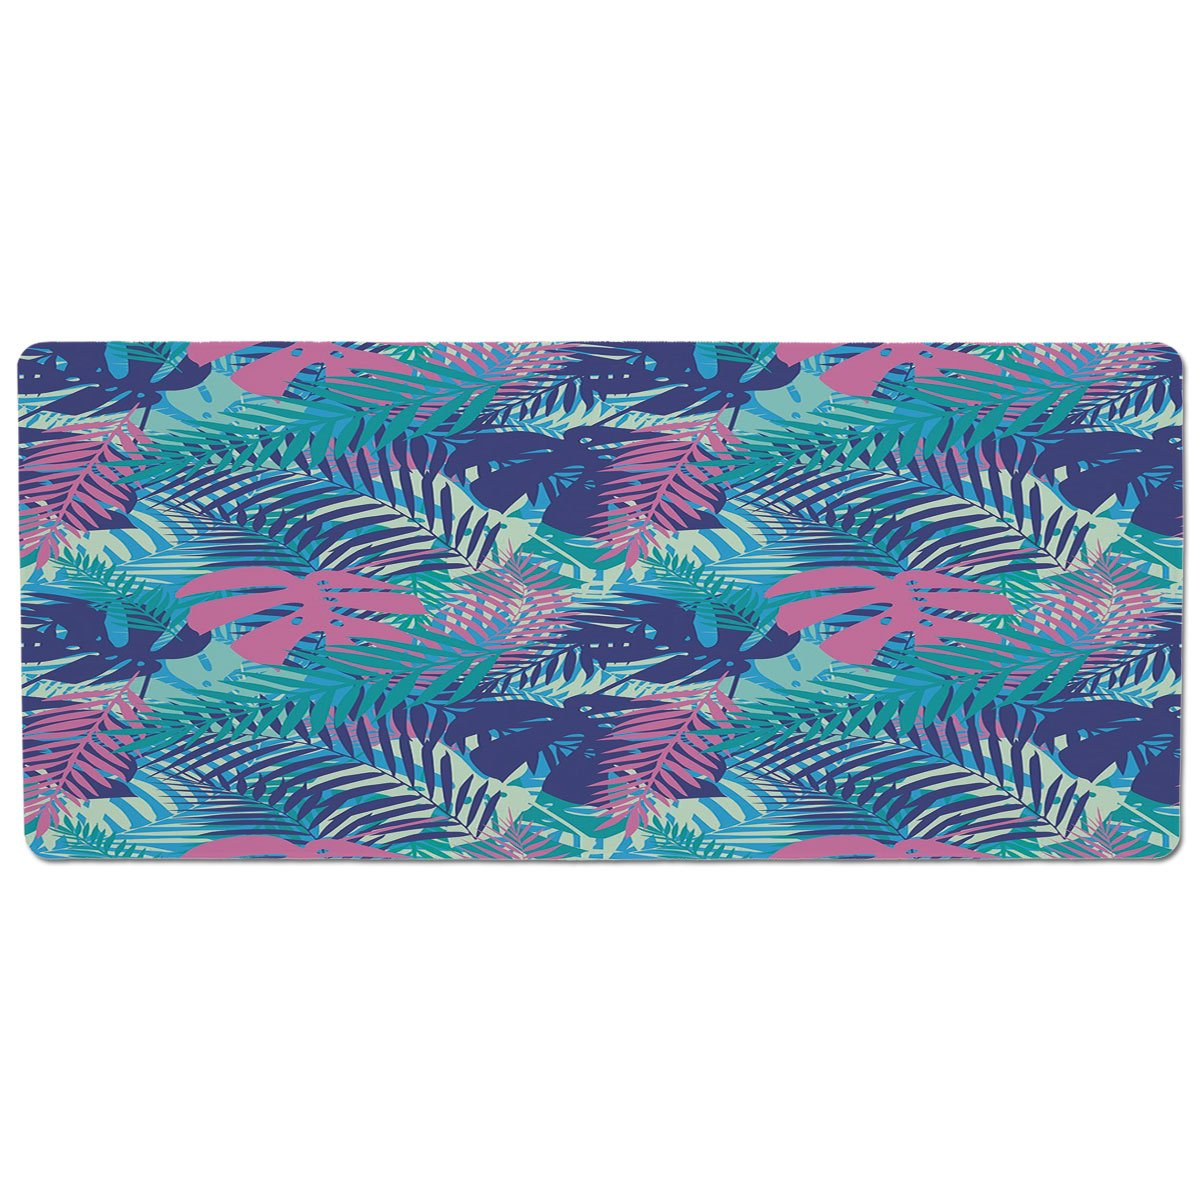 35.4\ iPrint Pet Mat for Food and Water,Leaf,Digital Neon Vivid colord Island Oceanic Flowers and Leaves,Pink Turquoise Dark bluee and Purple,Rectangle Non-Slip Rubber Mat for Dogs and Cats